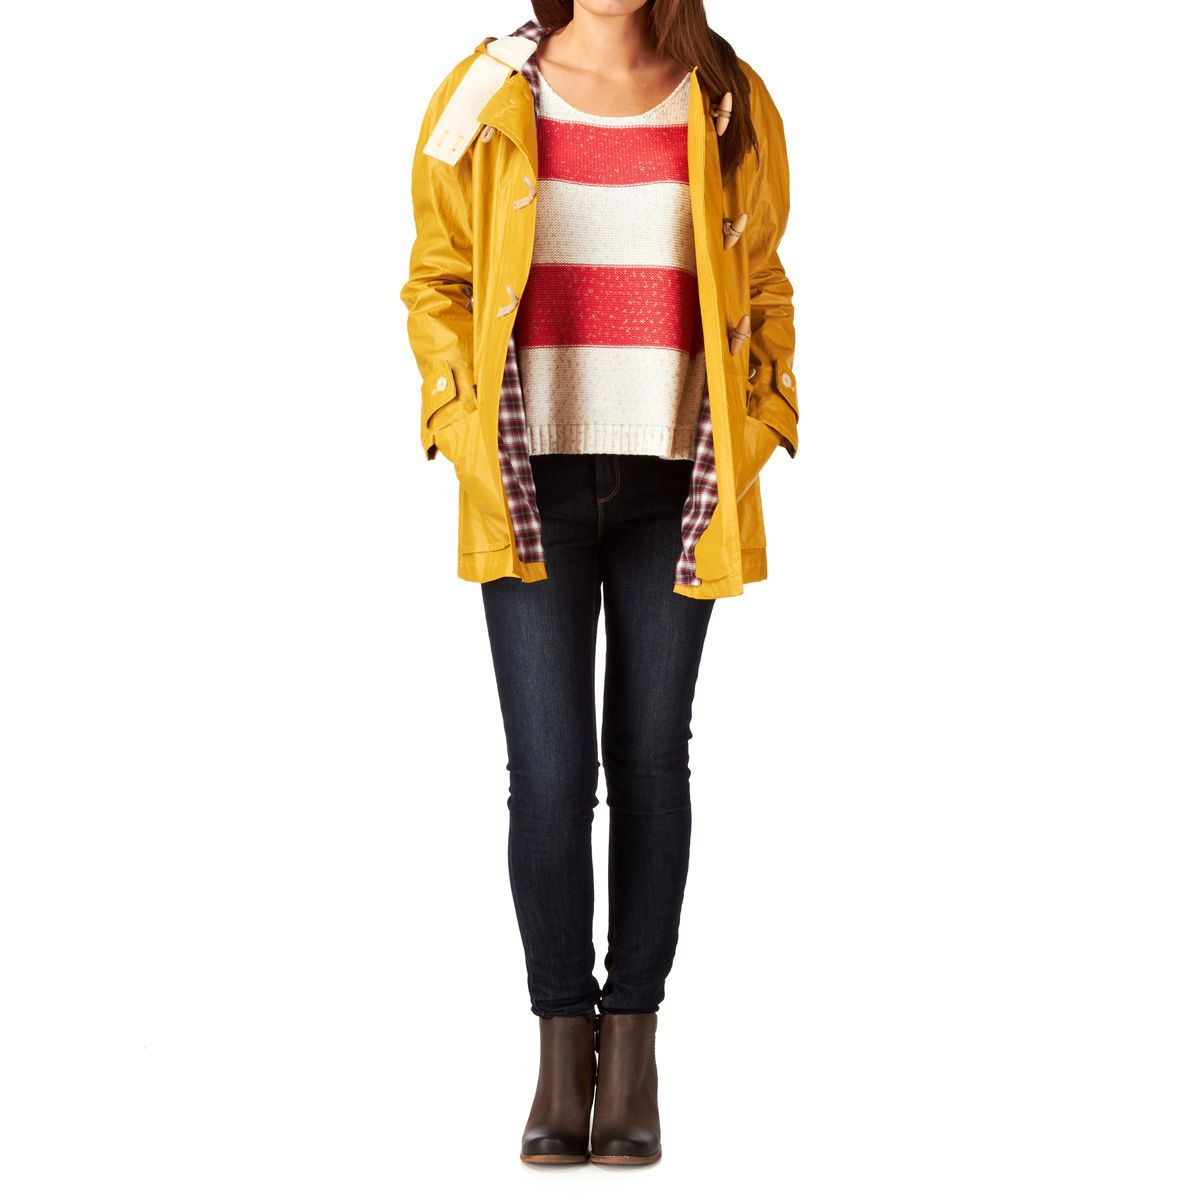 Gloverall Jackets - Gloverall Duffle Jacket - Yellow | outerwear ...